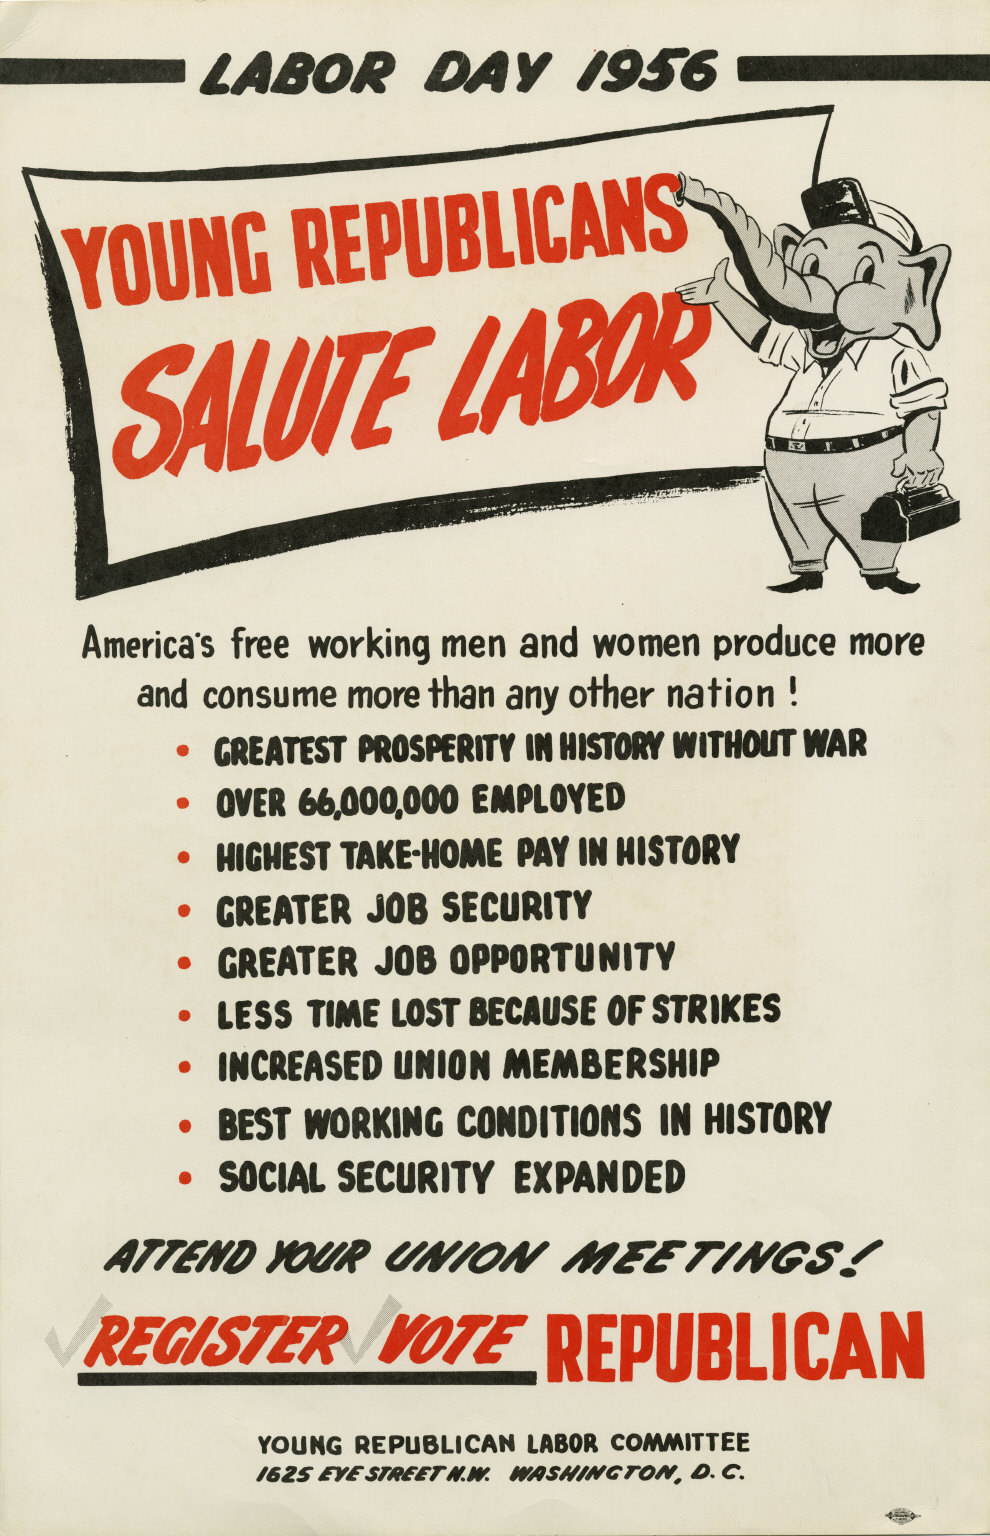 Young Republican Labor Committee - 1956